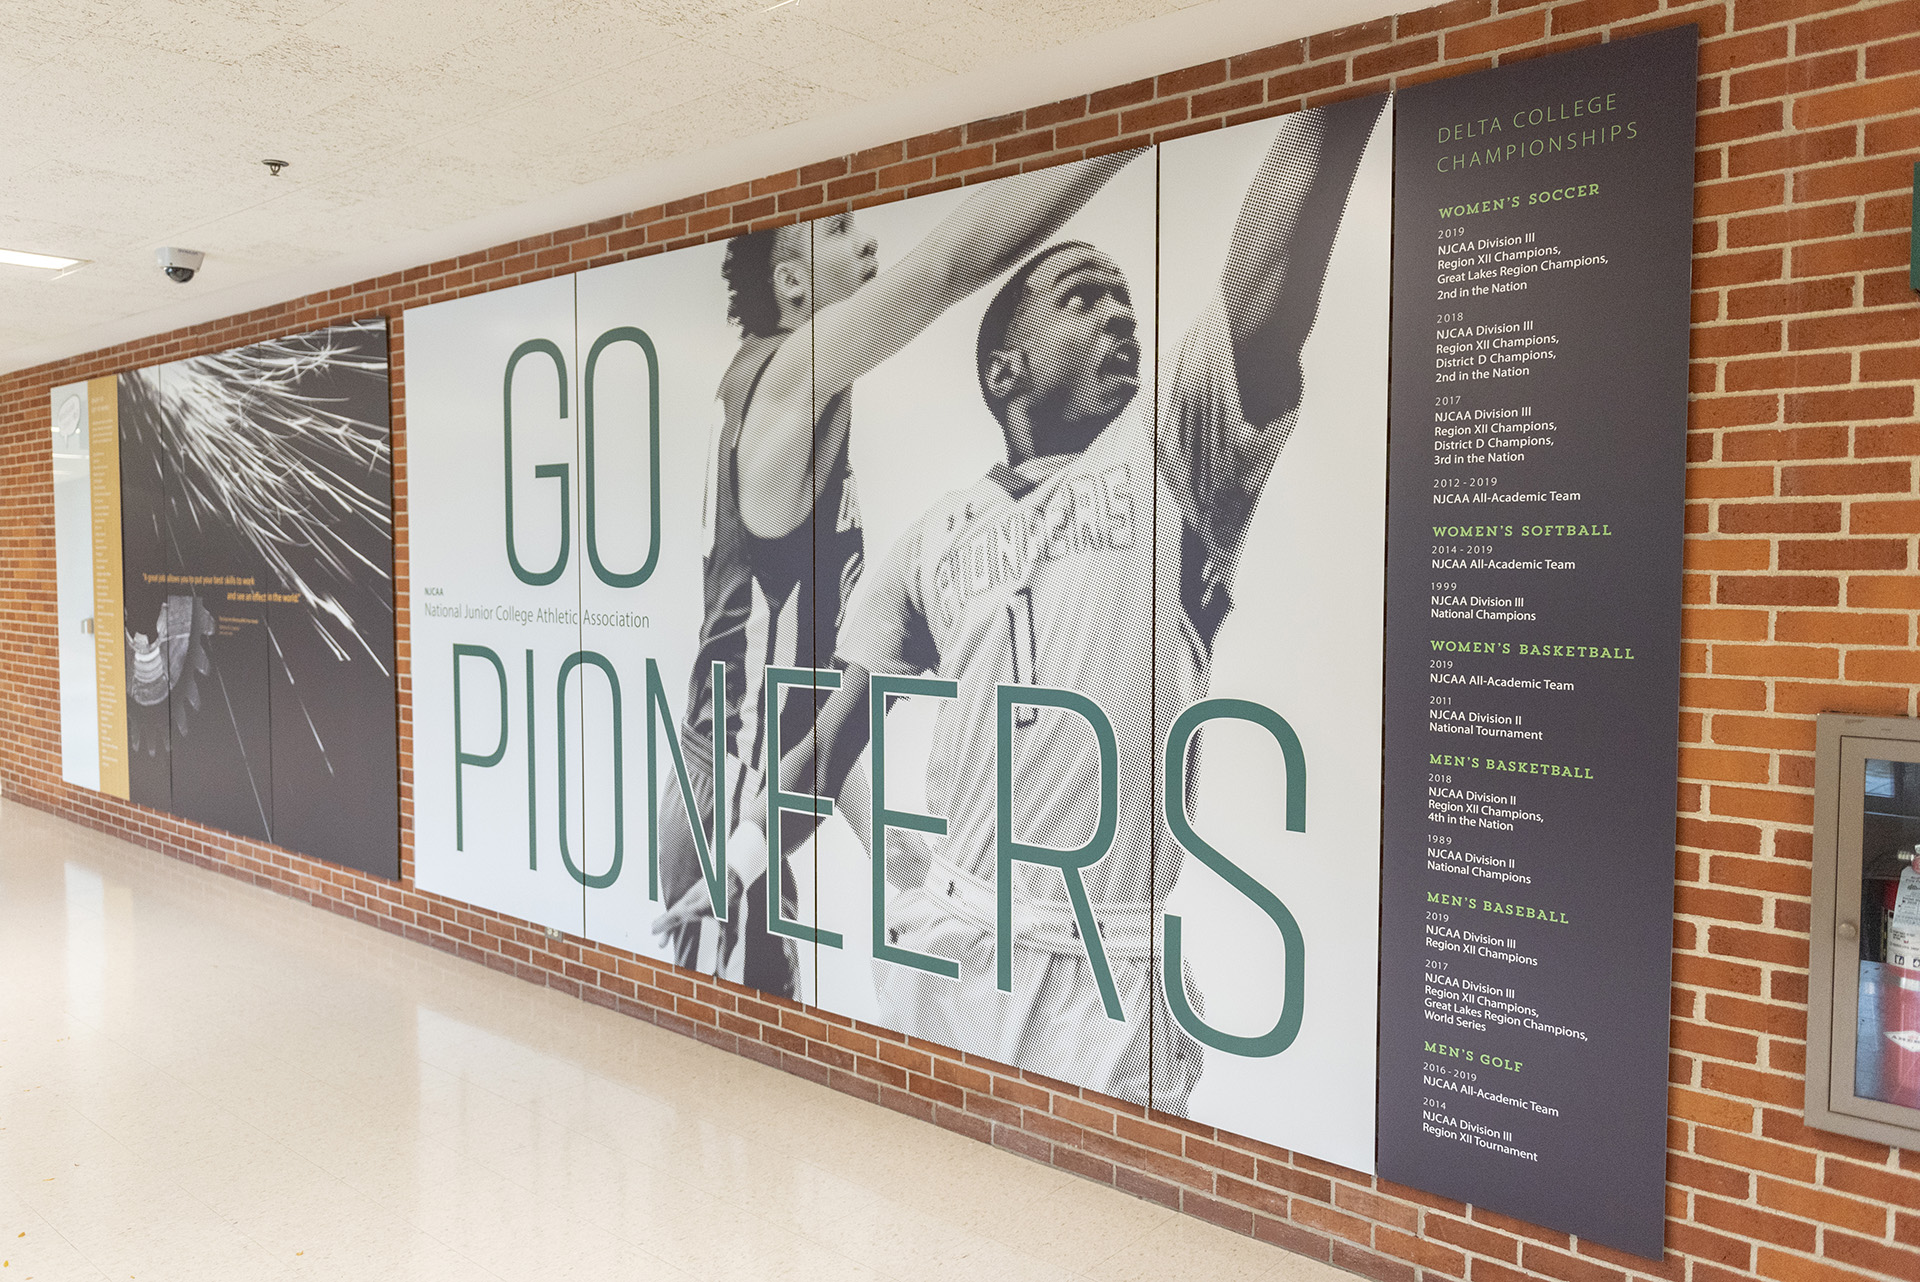 The Pioneer Gymnasium hosts many events, including commencement and sports events.